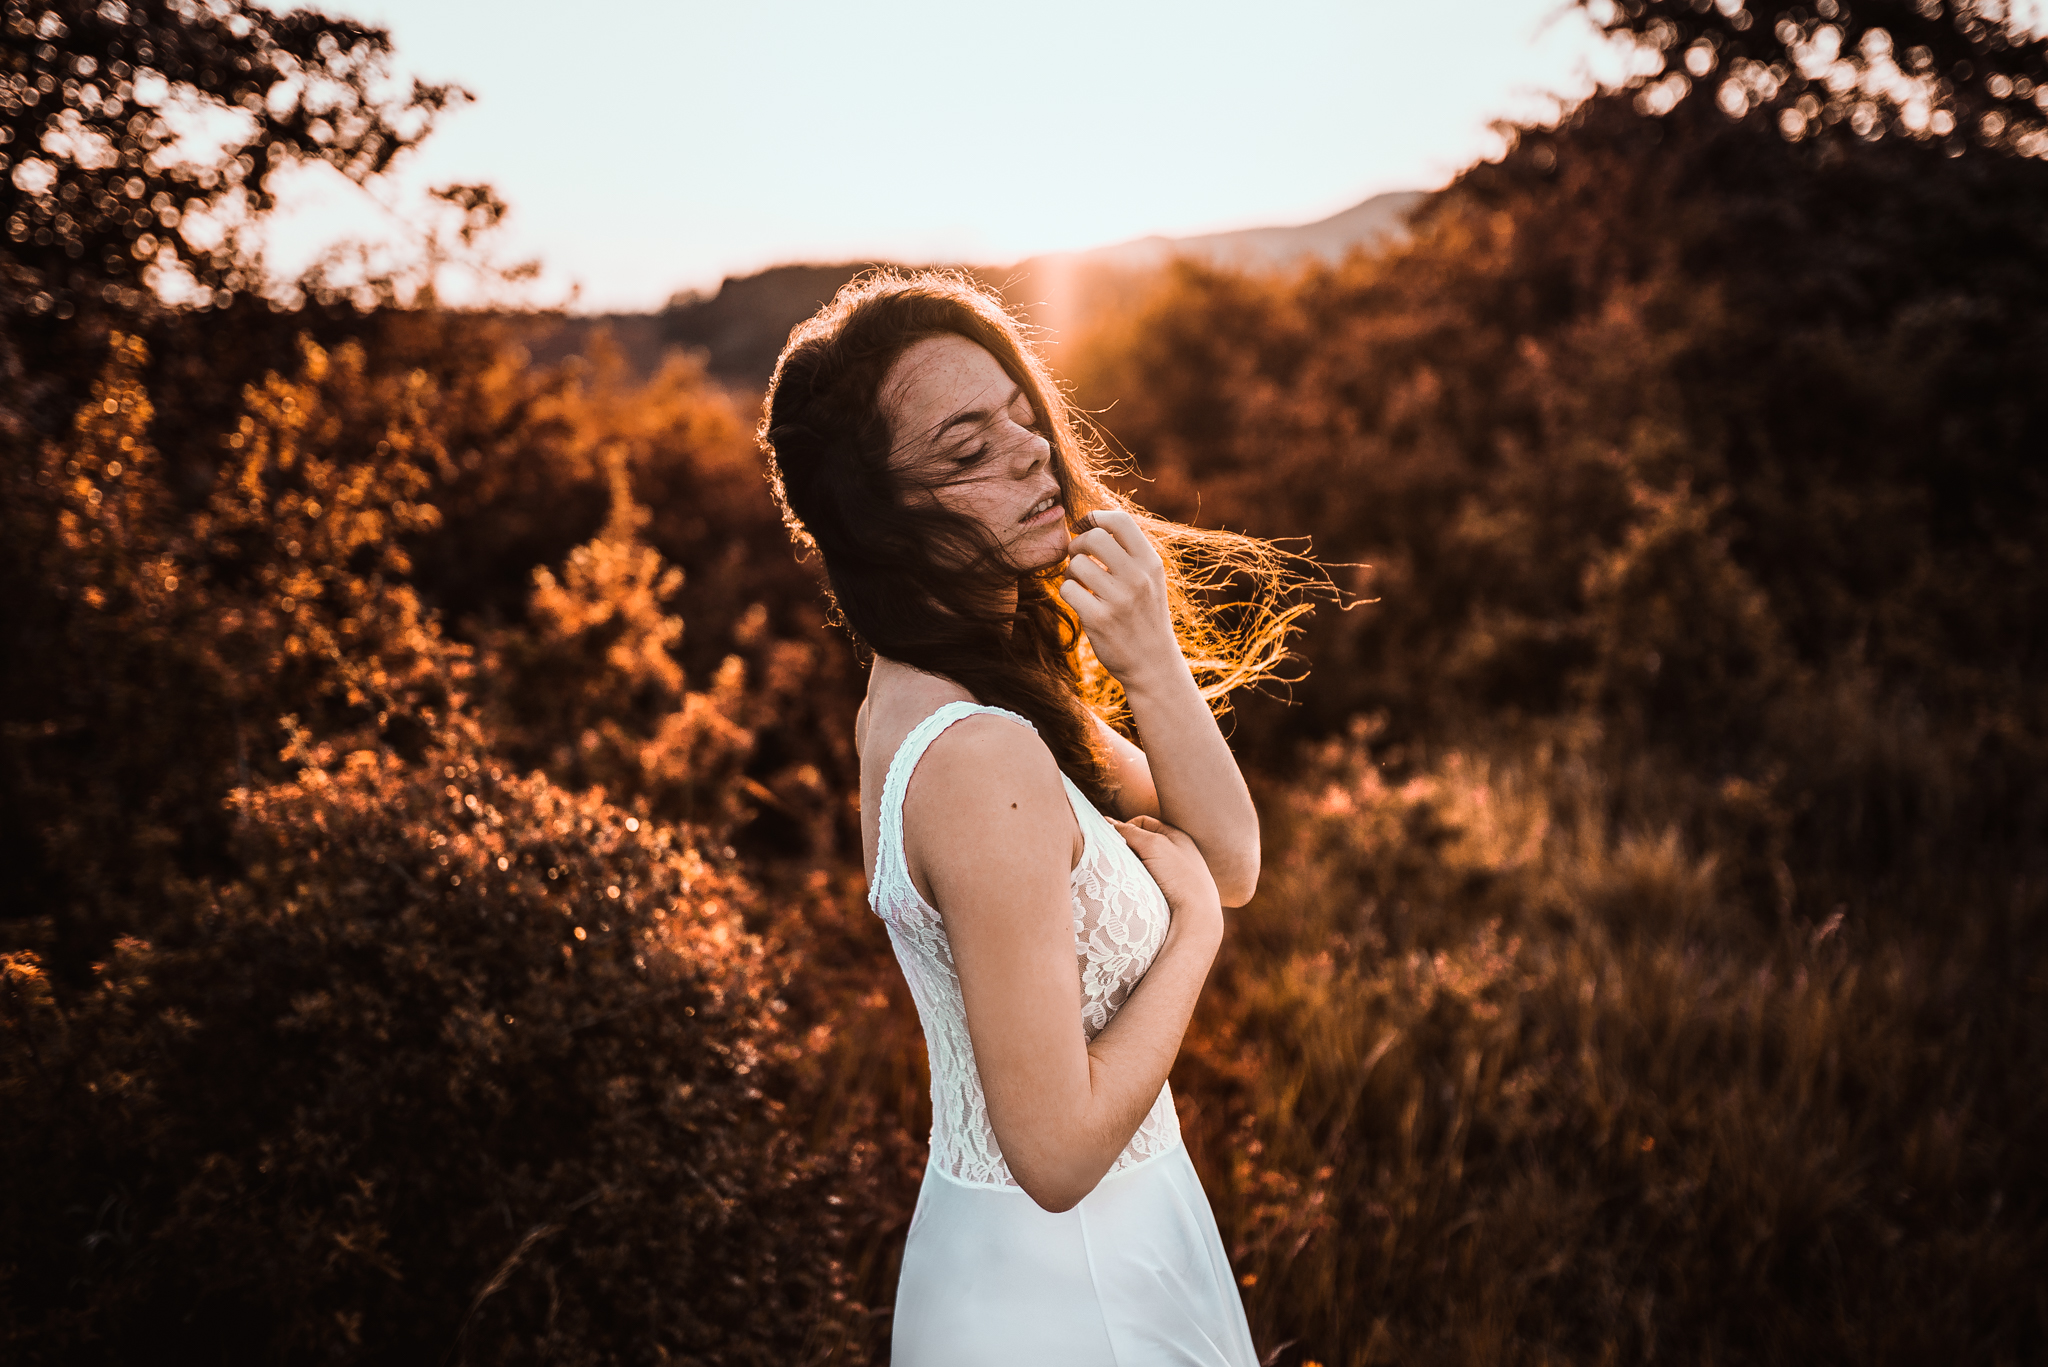 sunset, západ slnka, dievča, girl, art, emotion, feel, hair, glamour, body, sexy, nature, summer, hot, redhead, freckles, spring, gentle, fine